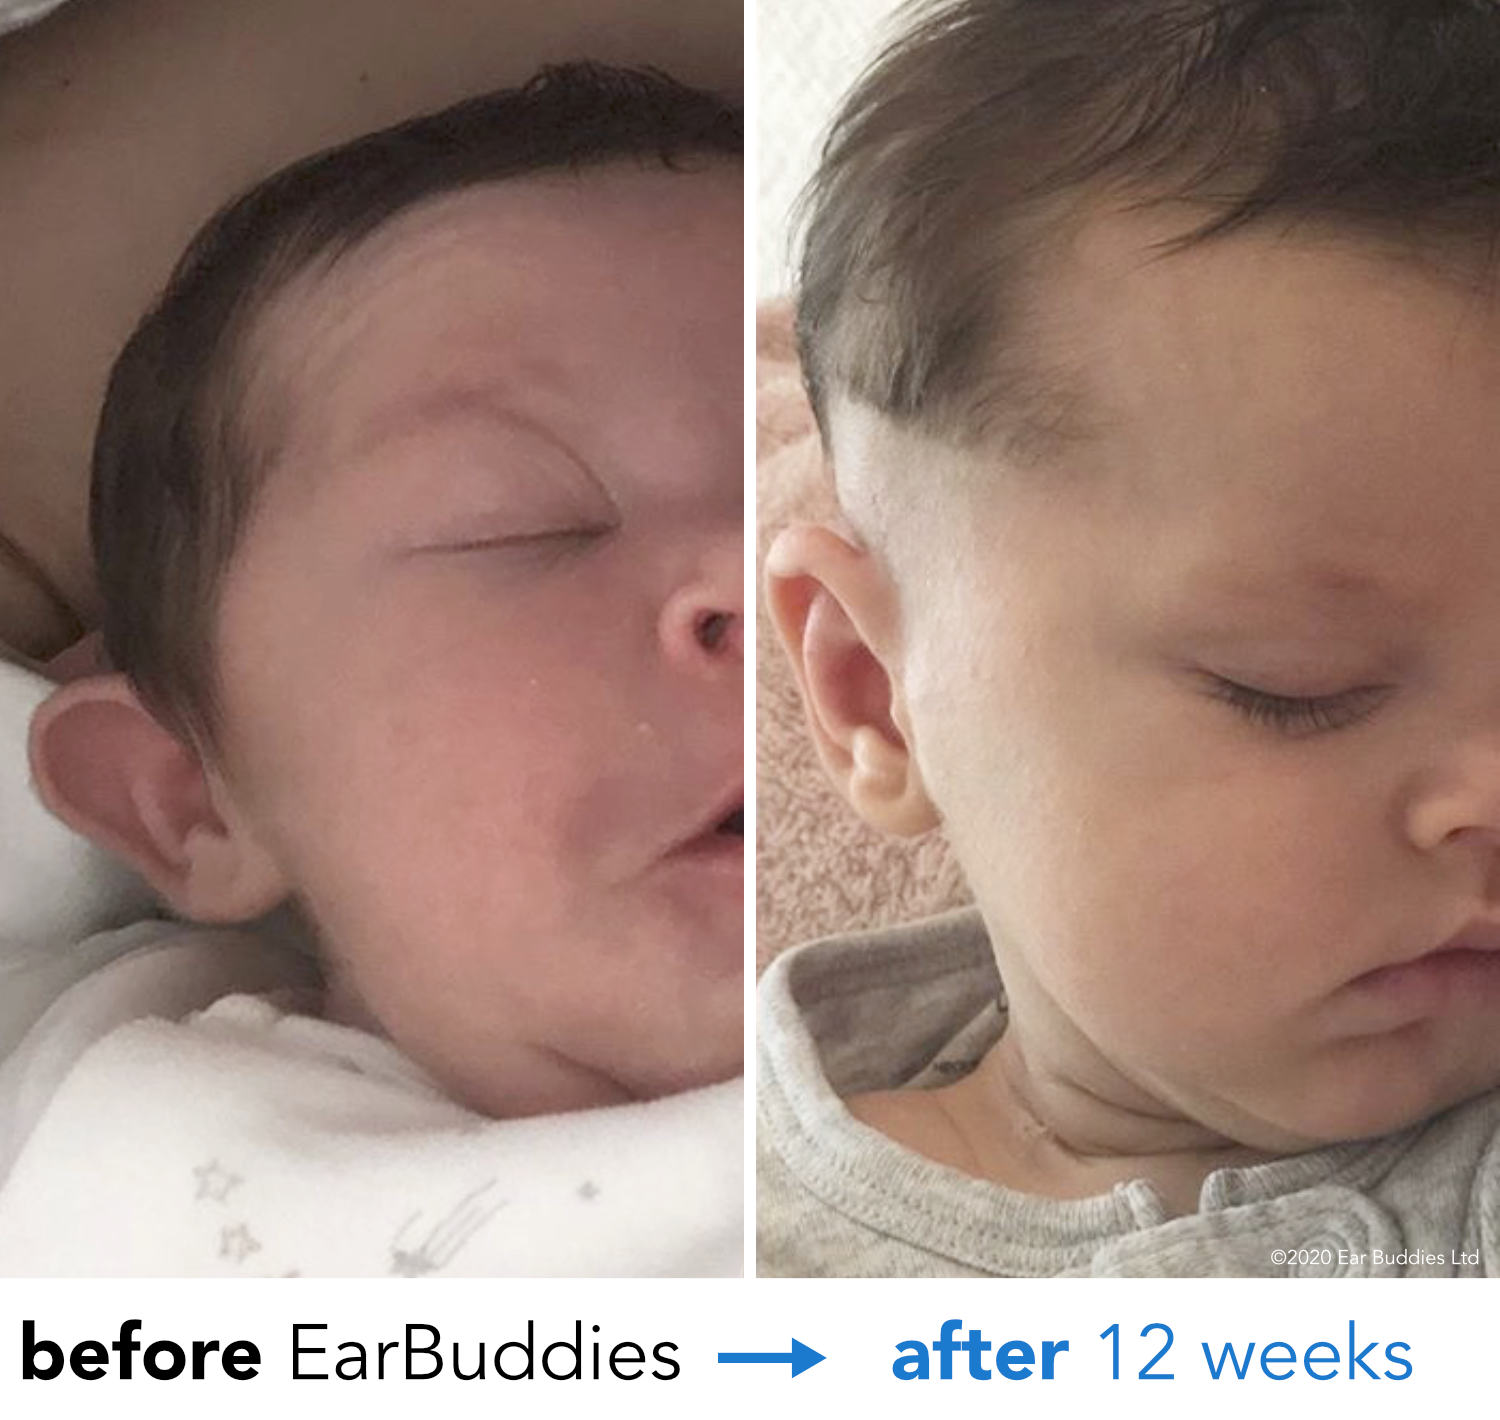 Baby Ears Stick Out Review of EarBuddies